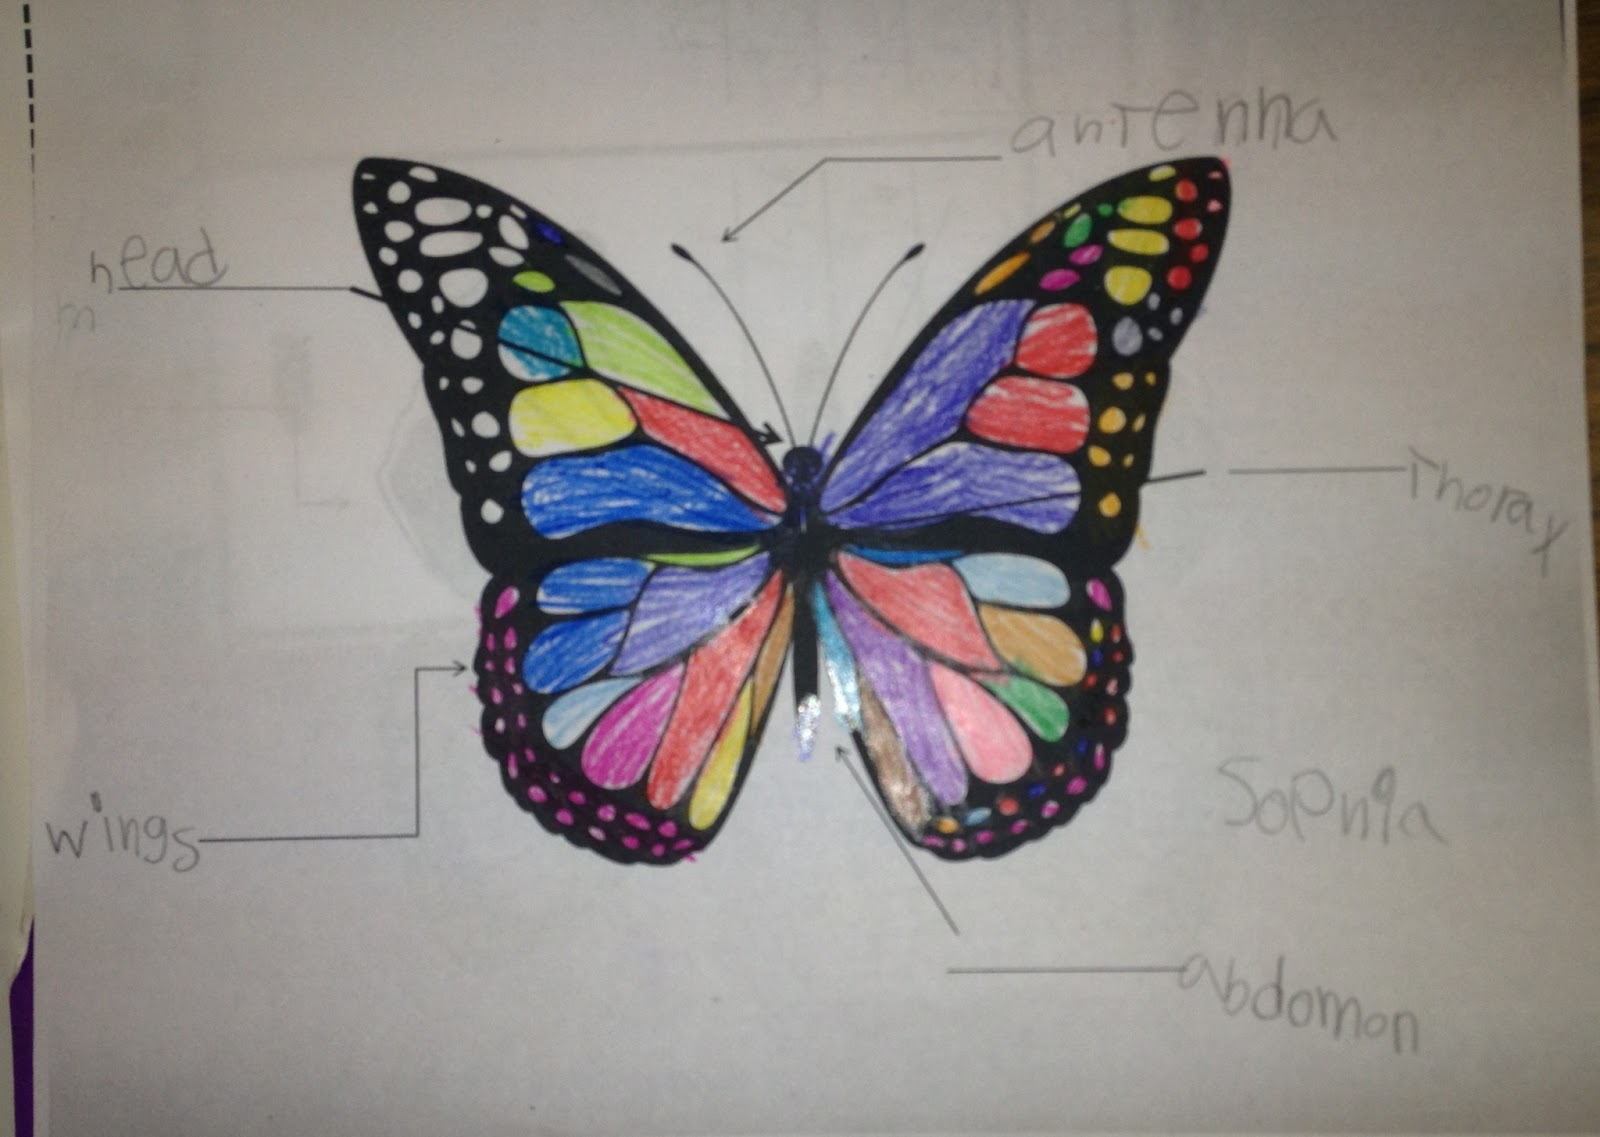 parts of a butterfly diagram analog data acquisition system block carolina teacher butterflies and fairytales